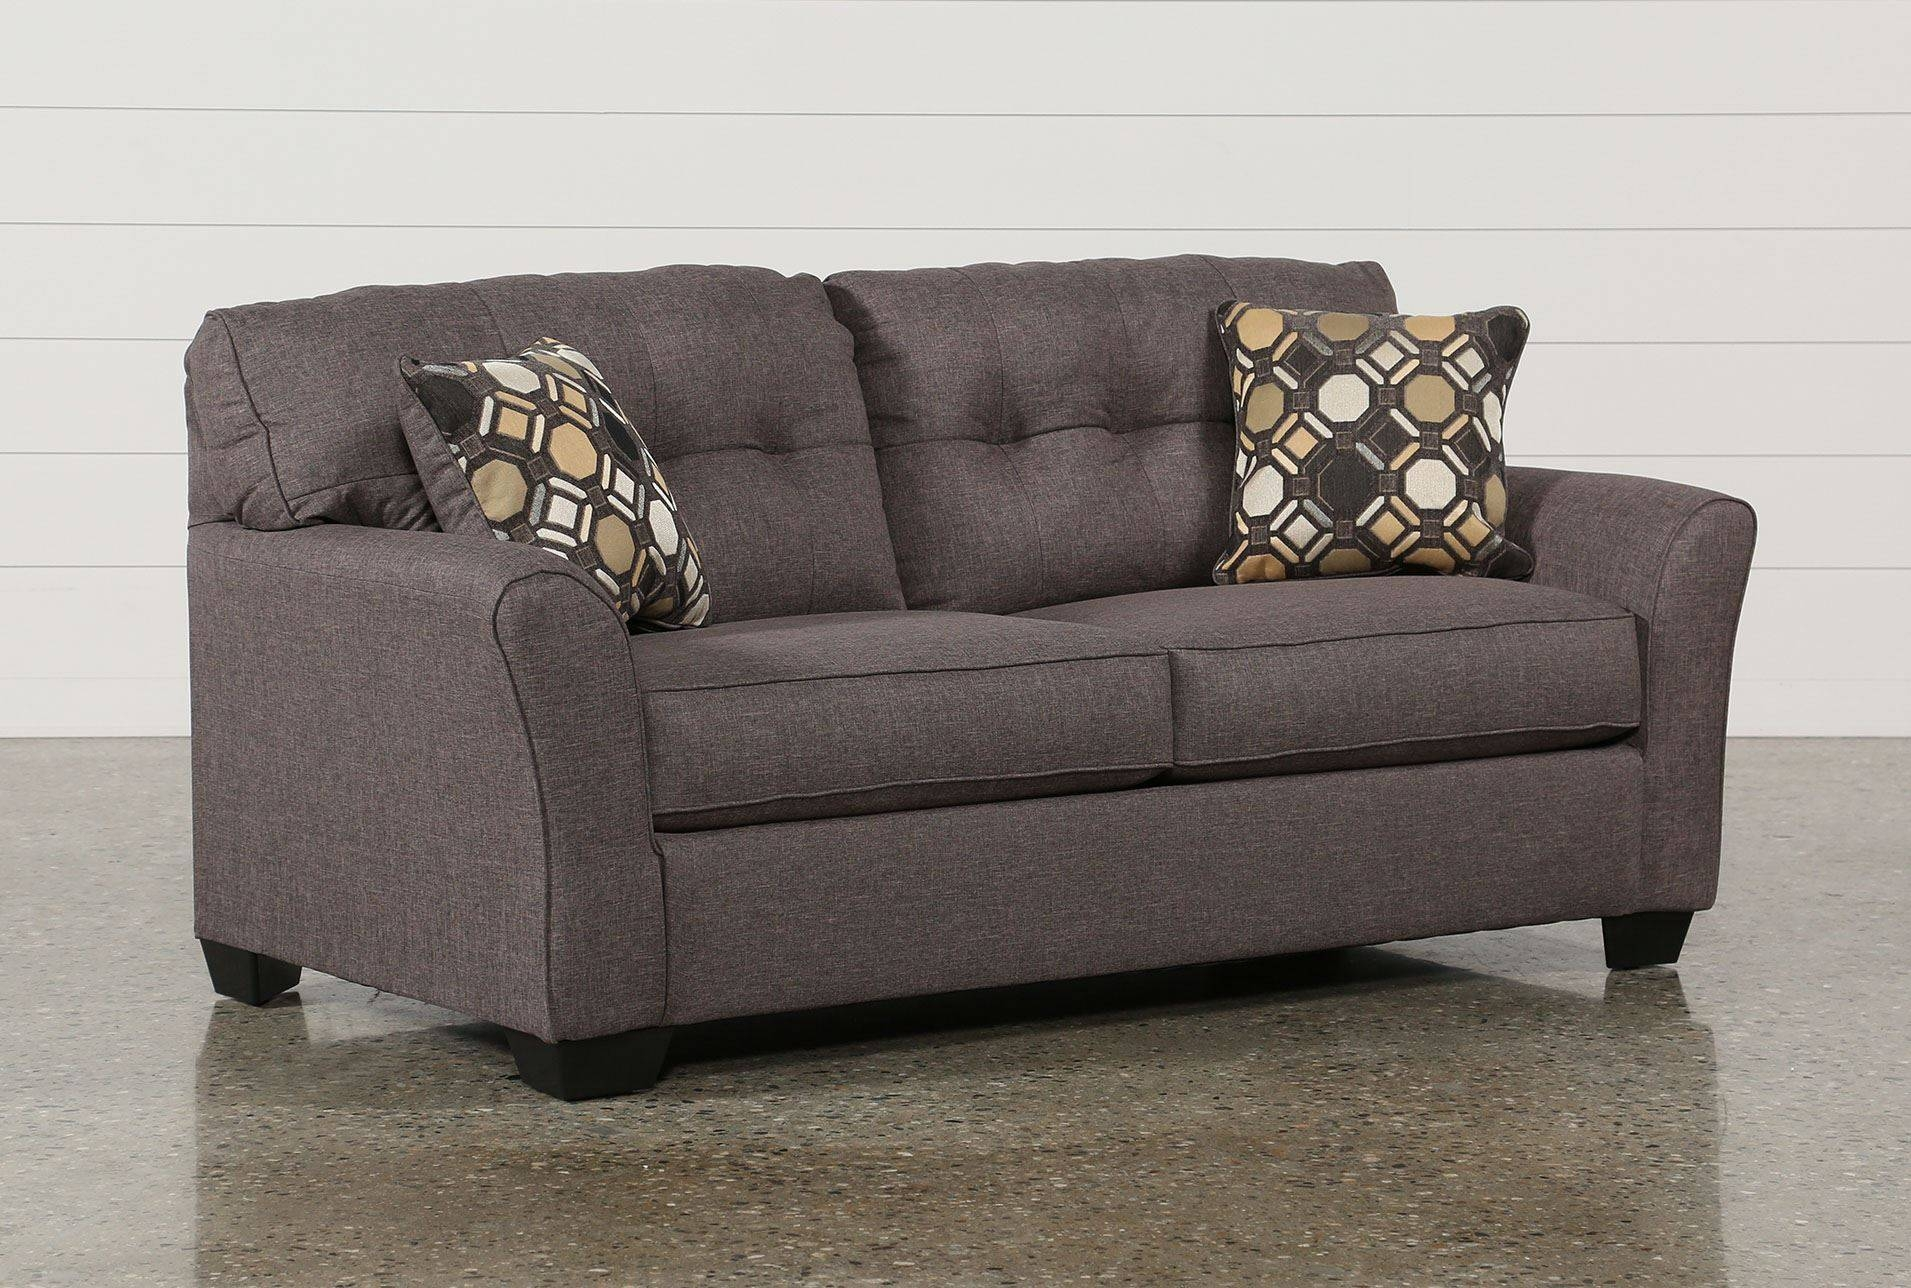 Cheap Sectional Sofas Under 400 - Tourdecarroll inside Microsuede Sleeper Sofas (Image 2 of 15)